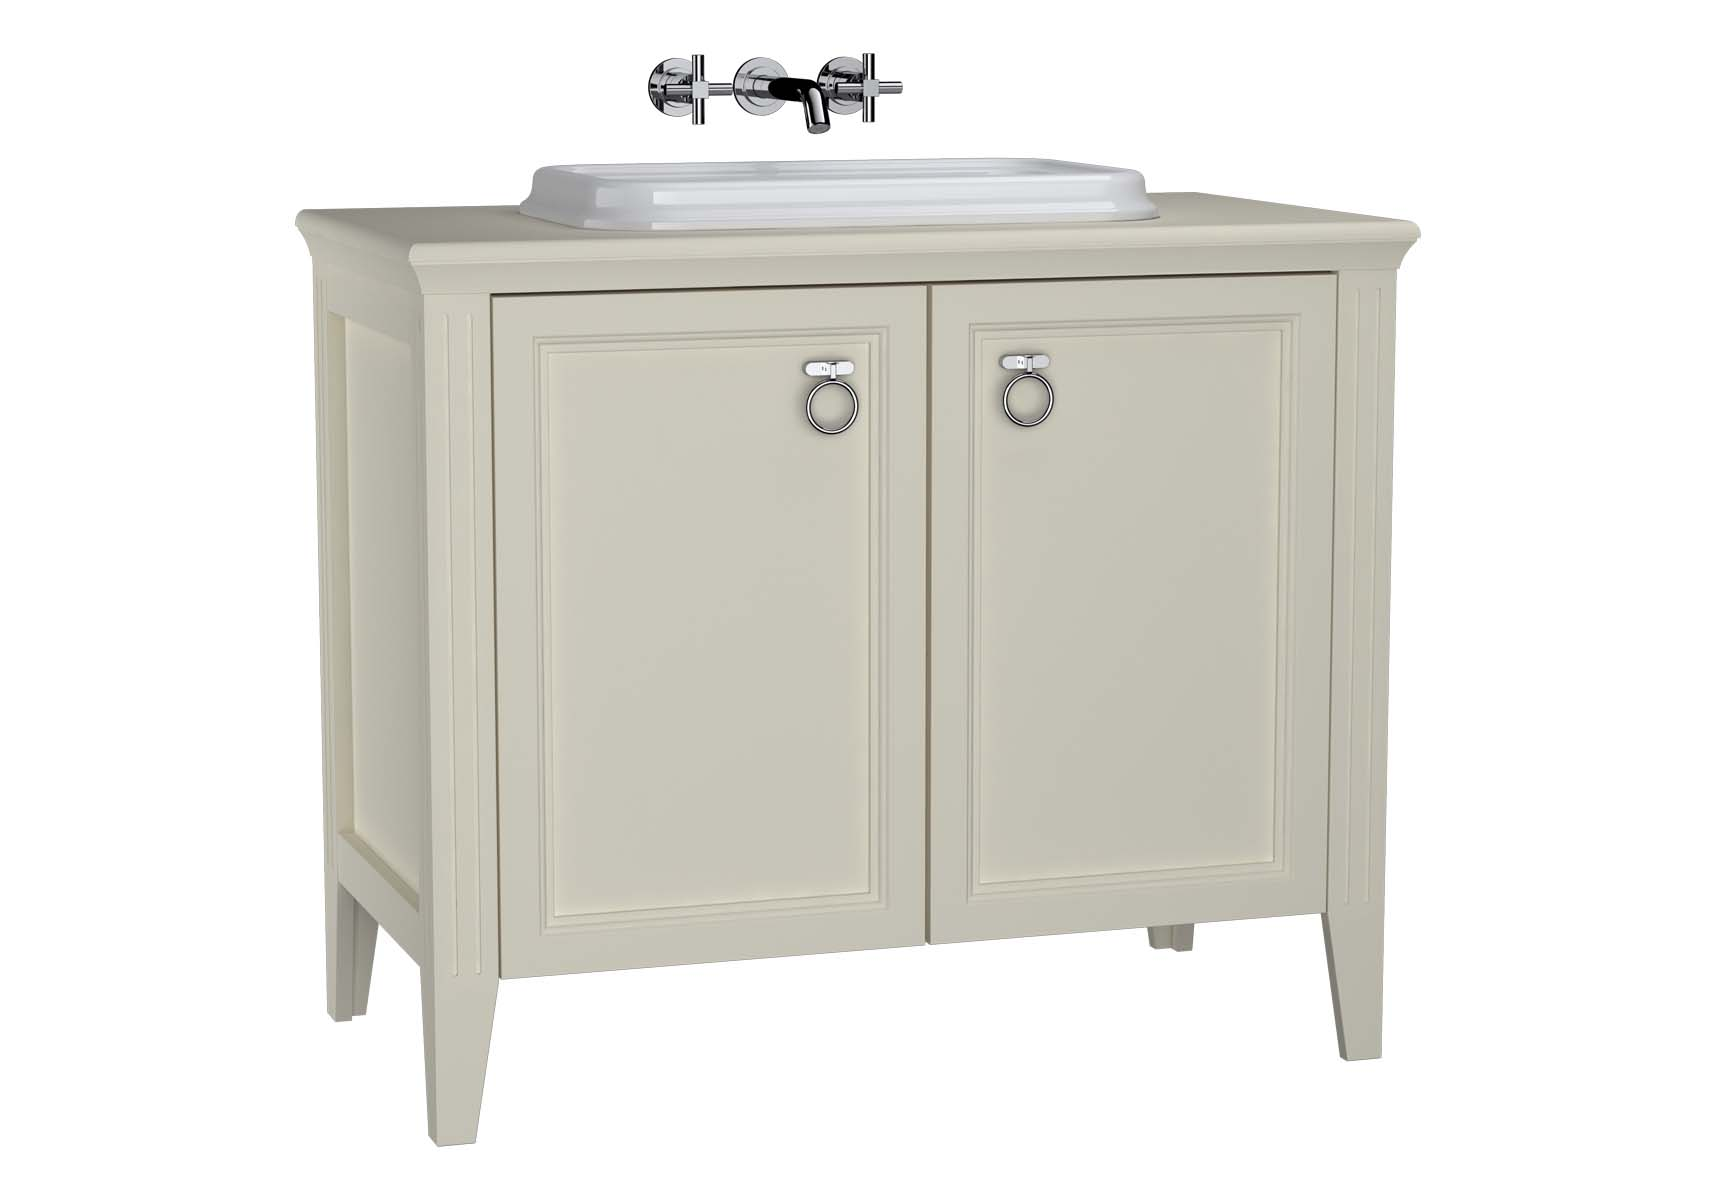 Valarte Washbasin Unit, 100 cm, with doors, with countertop washbasin, Matte Ivory